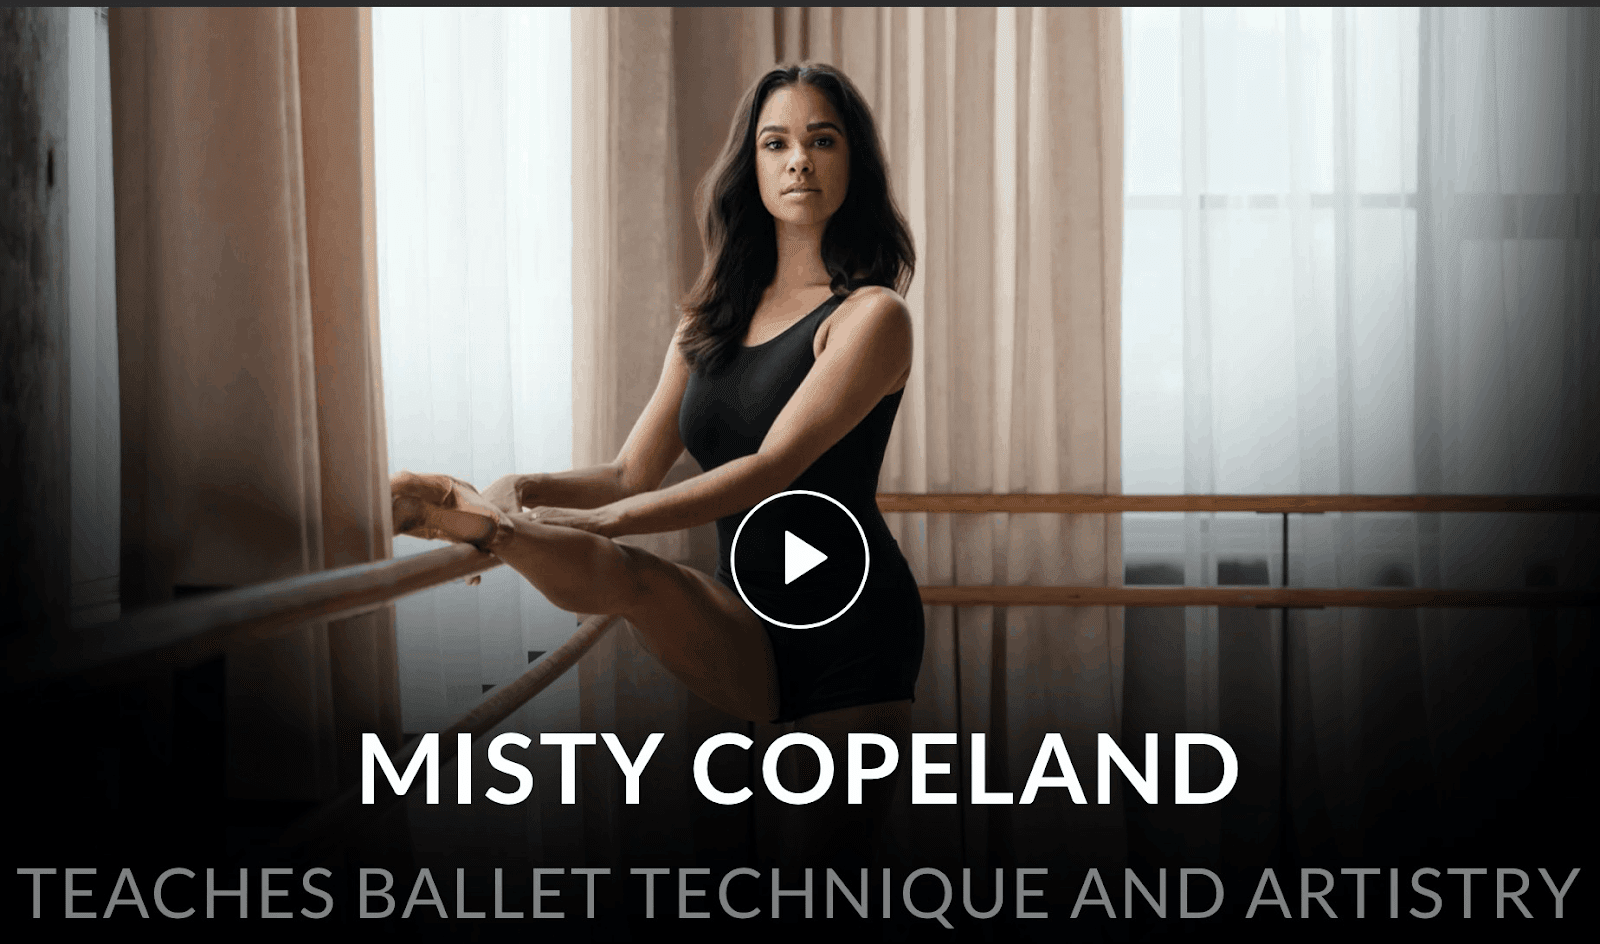 Misty Copeland leaning against a ballet barre; the advertisement for her Masterclass.